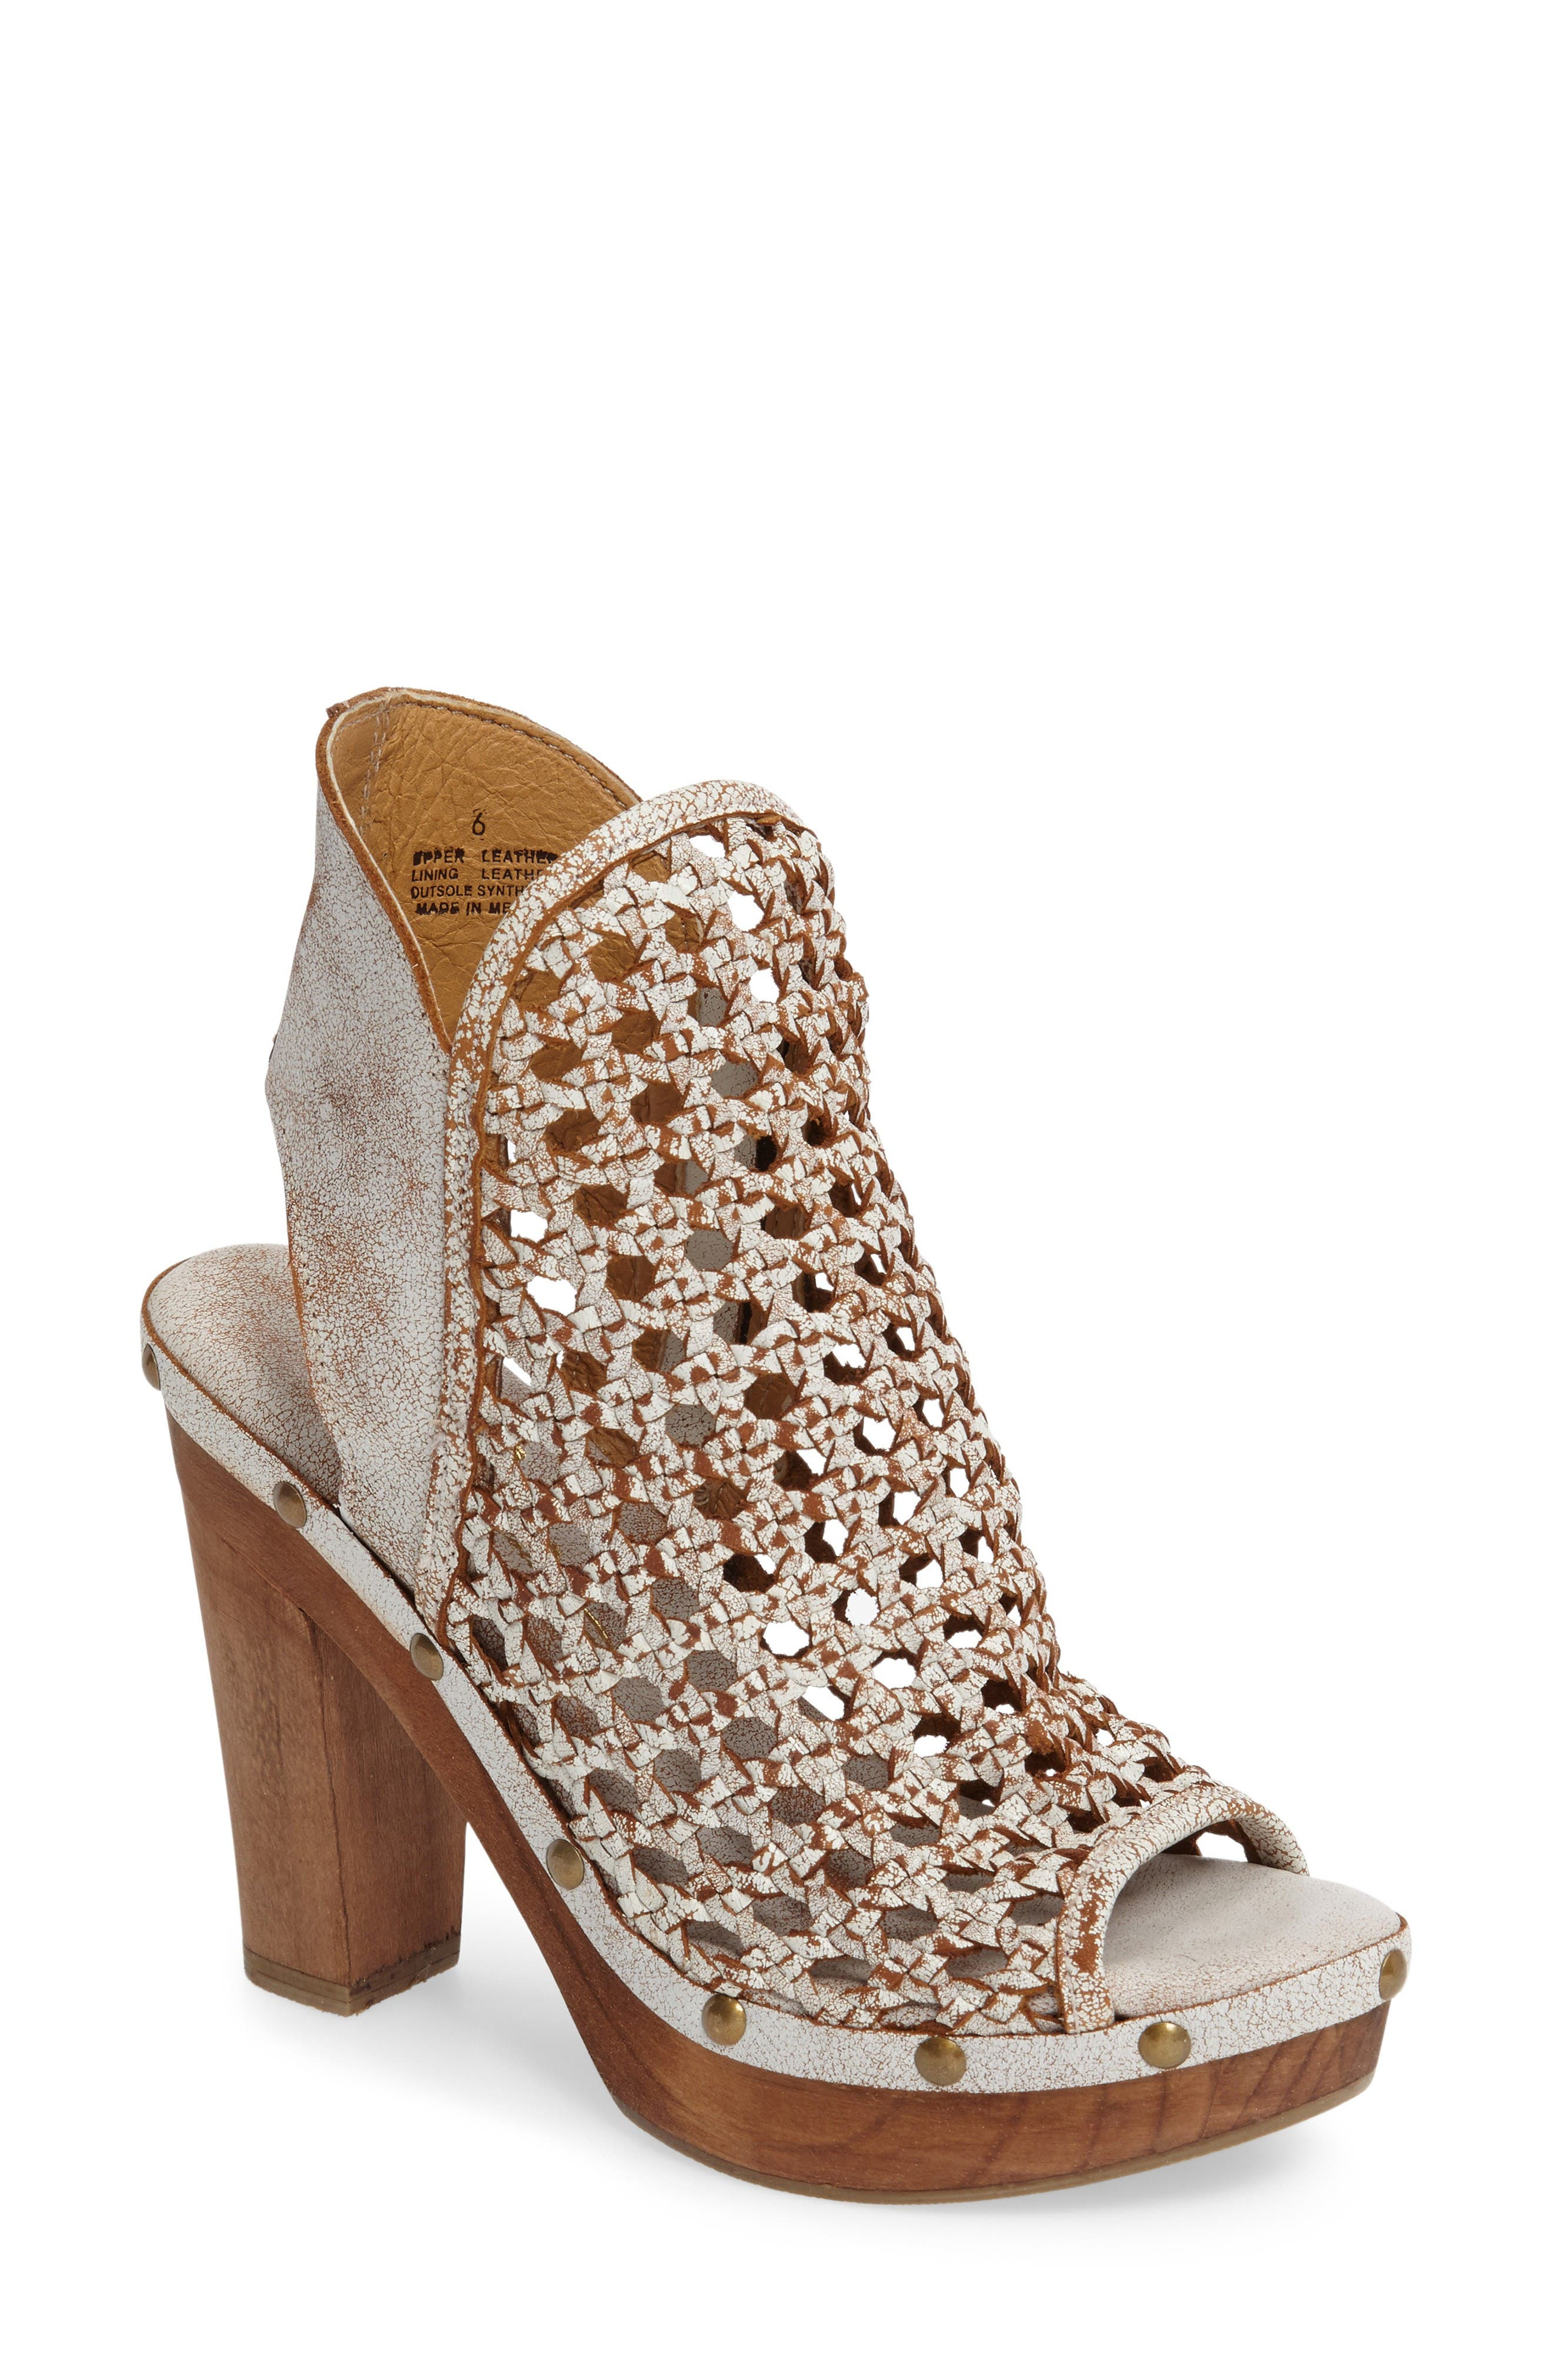 Main Image - Sbicca Rayna Sandal (Women)